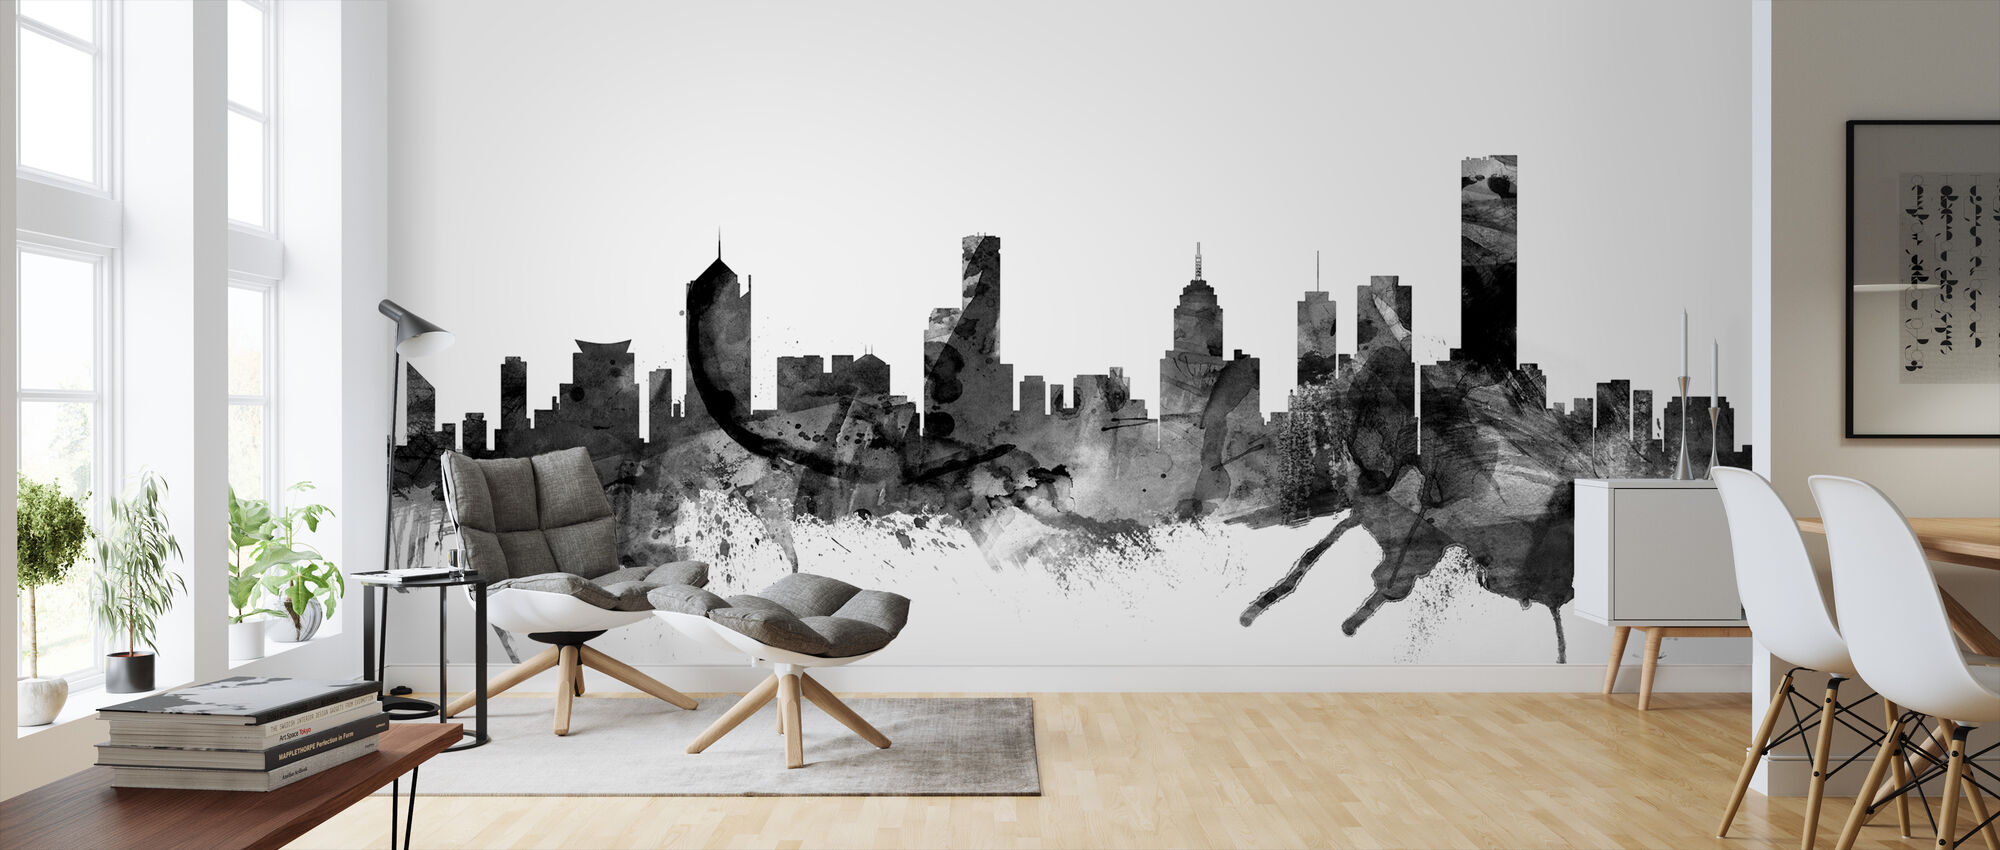 Melbourne Skyline Black - Wallpaper - Living Room